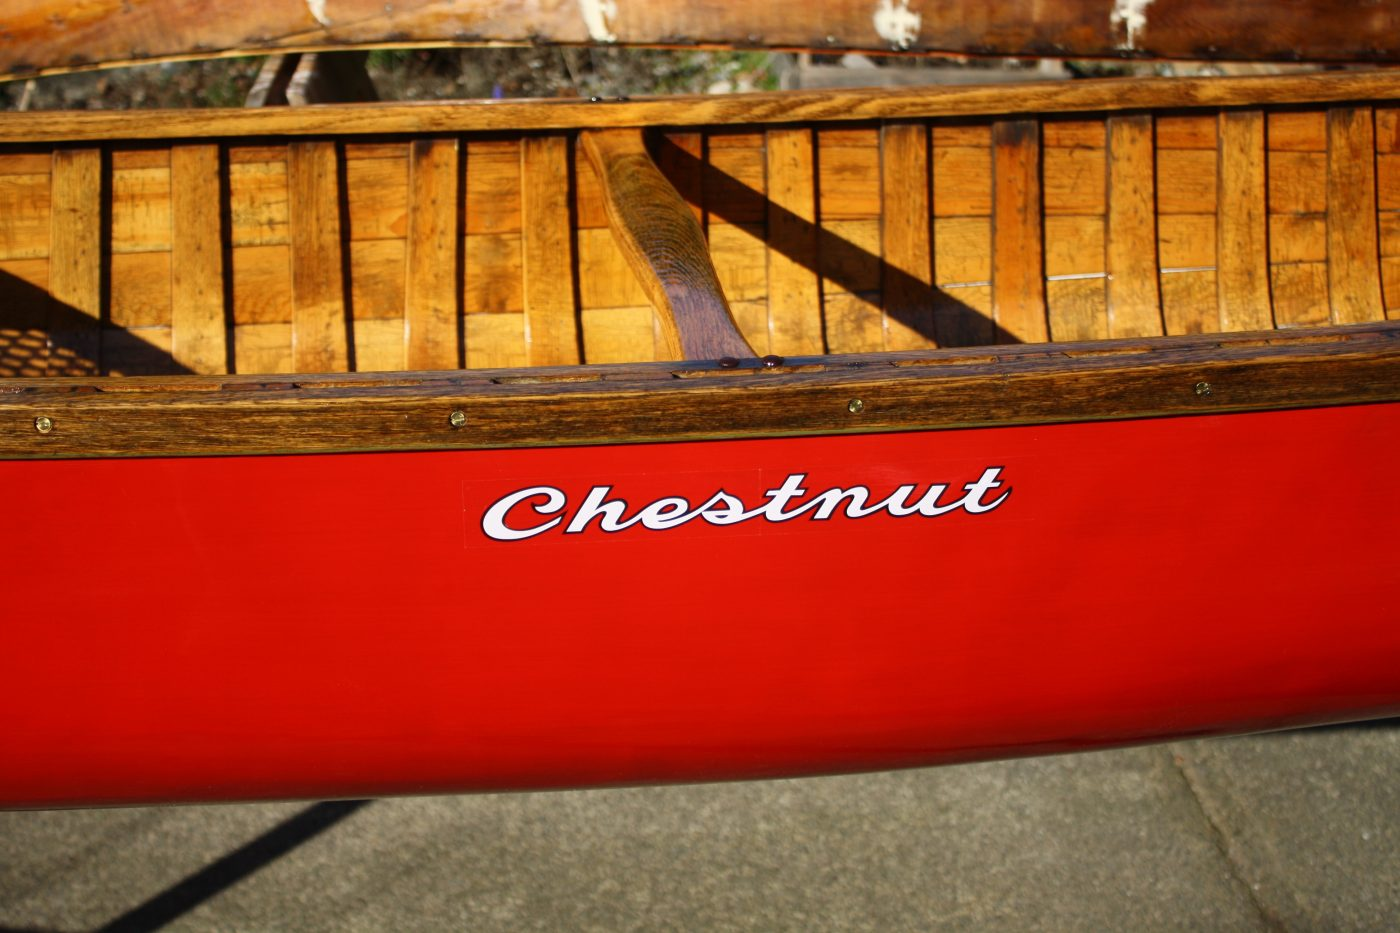 Chestnut canoe decal